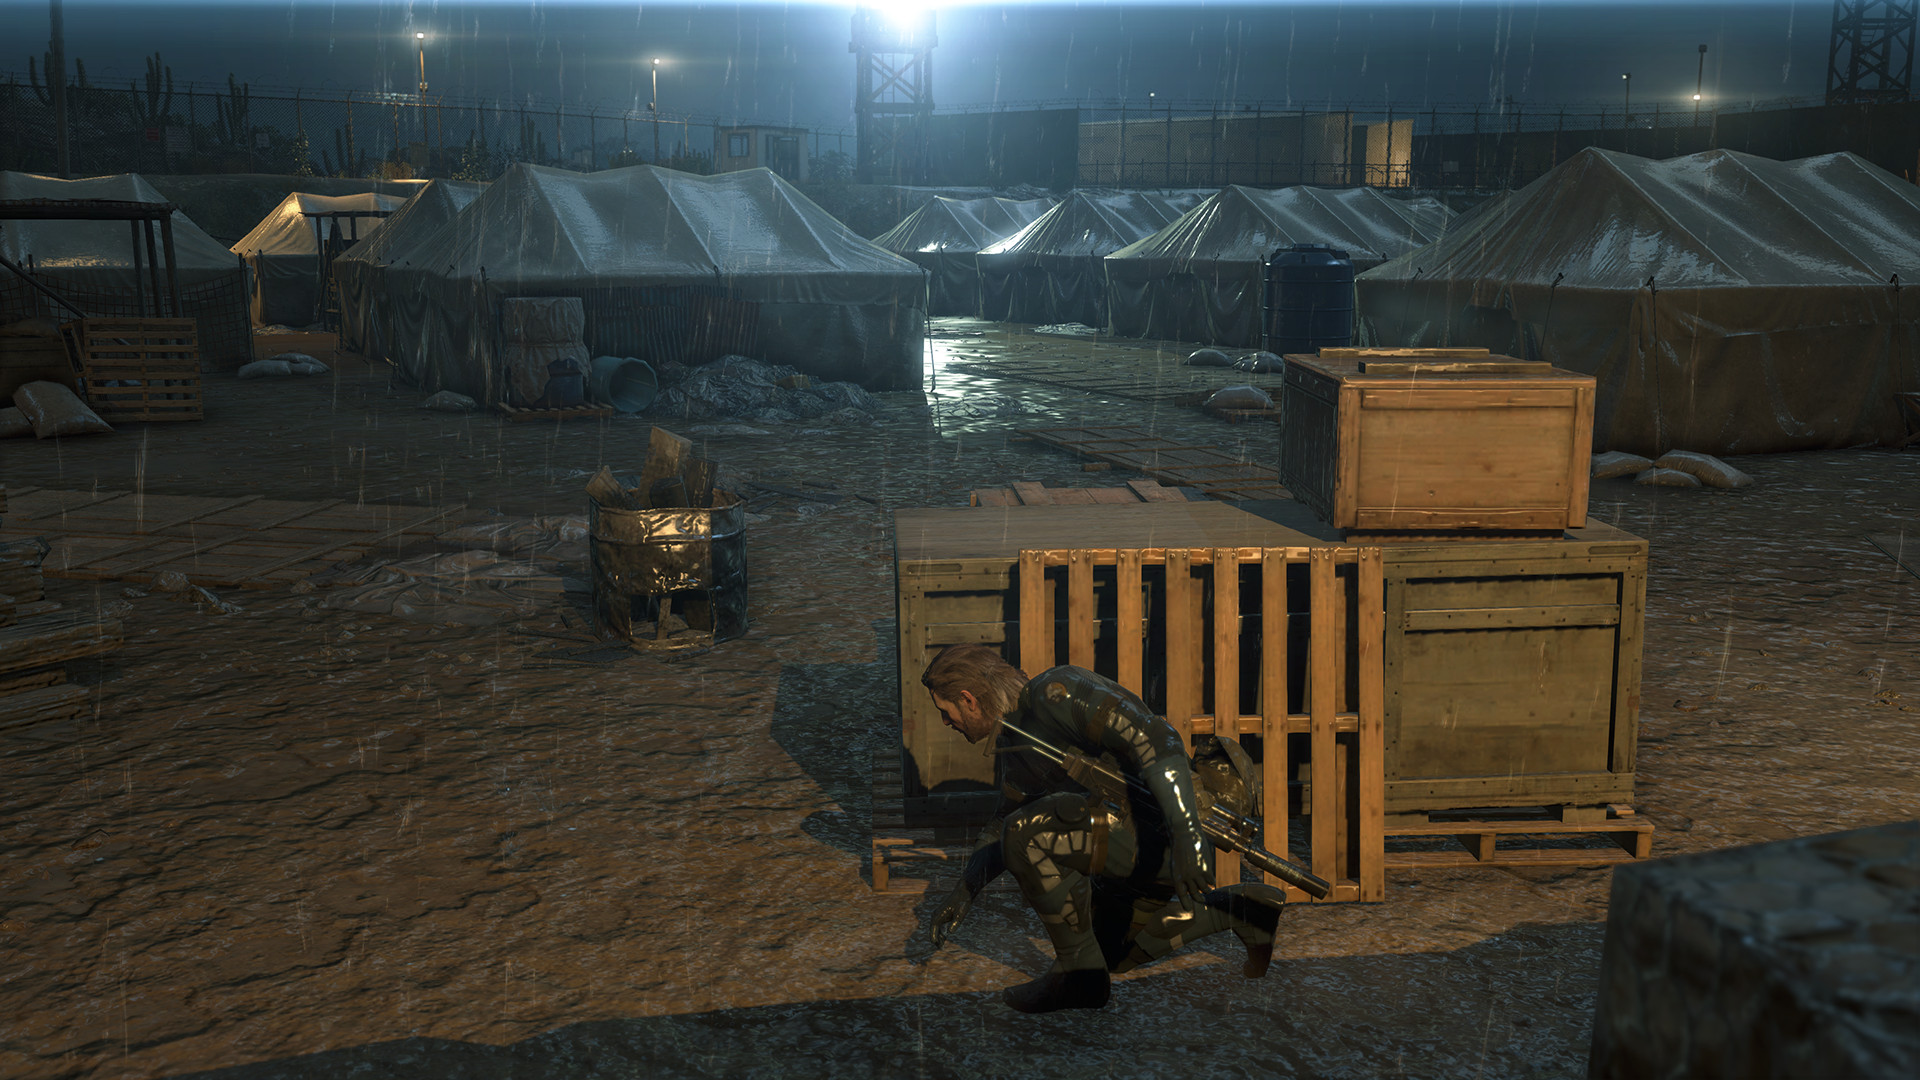 25Metal Gear Solid 5 Ground Zeroes Texturen niedrig-pcgh